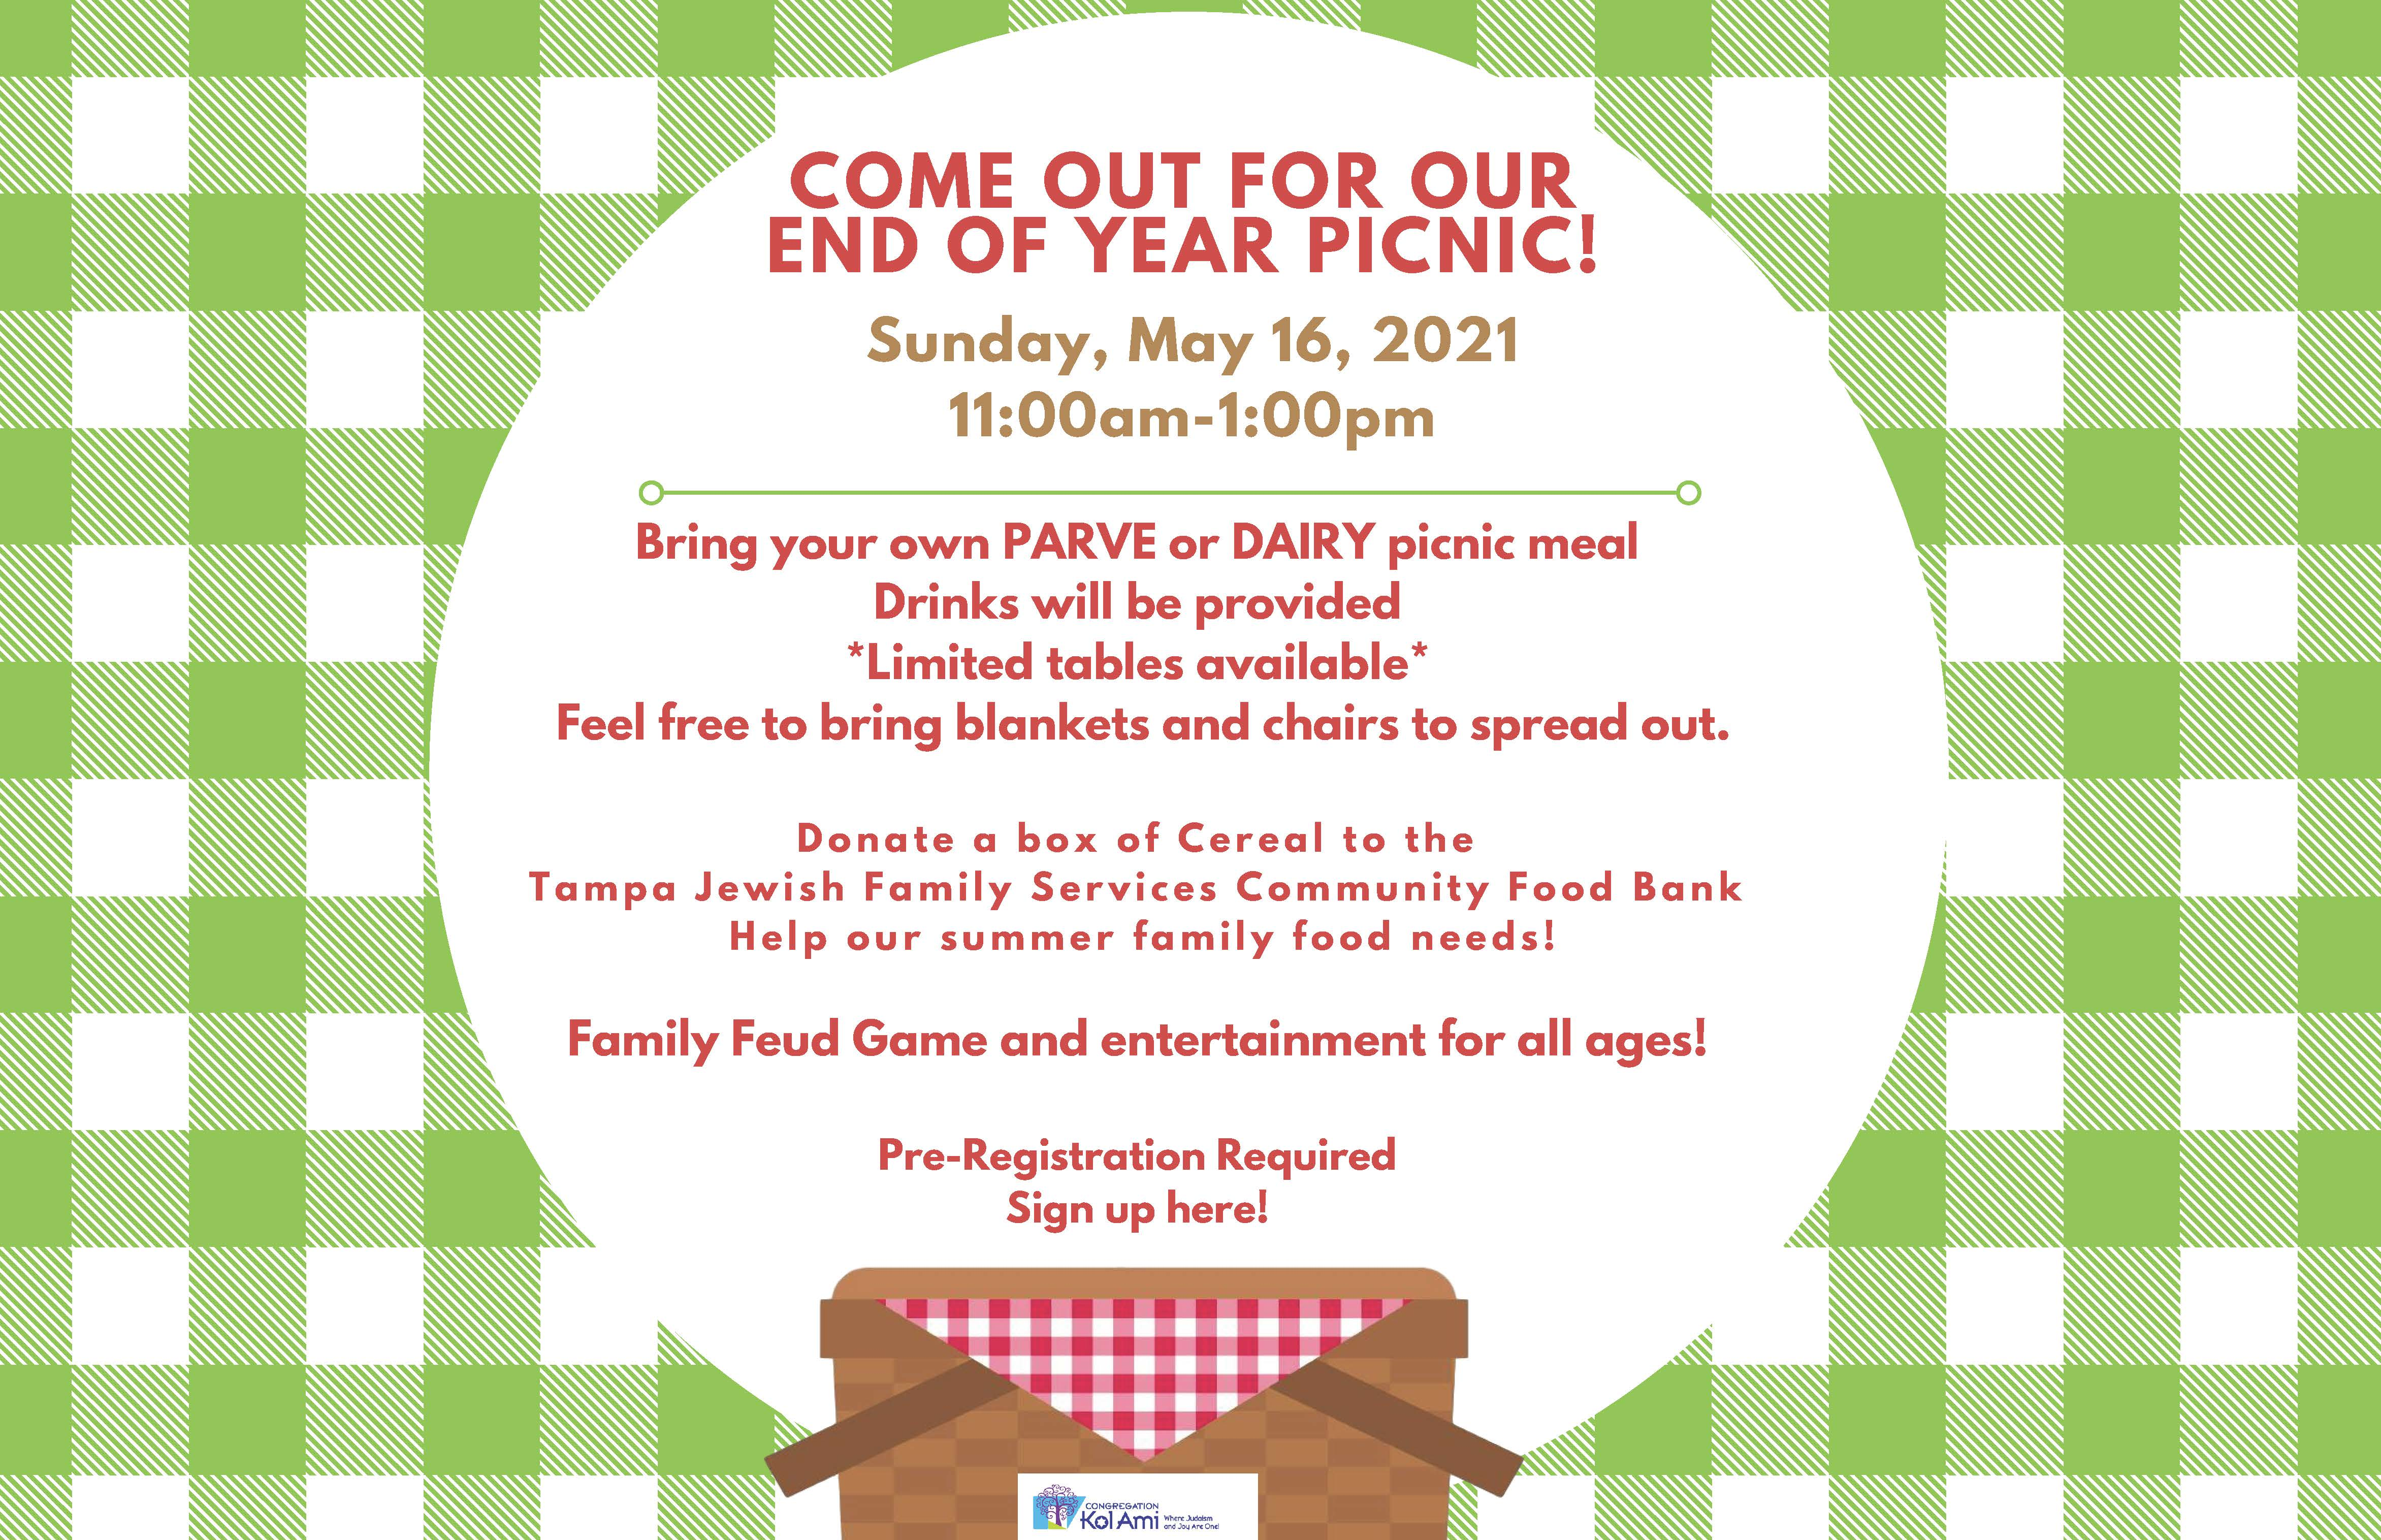 Banner Image for IN- PERSON Annual Congregational End of the Year Picnic